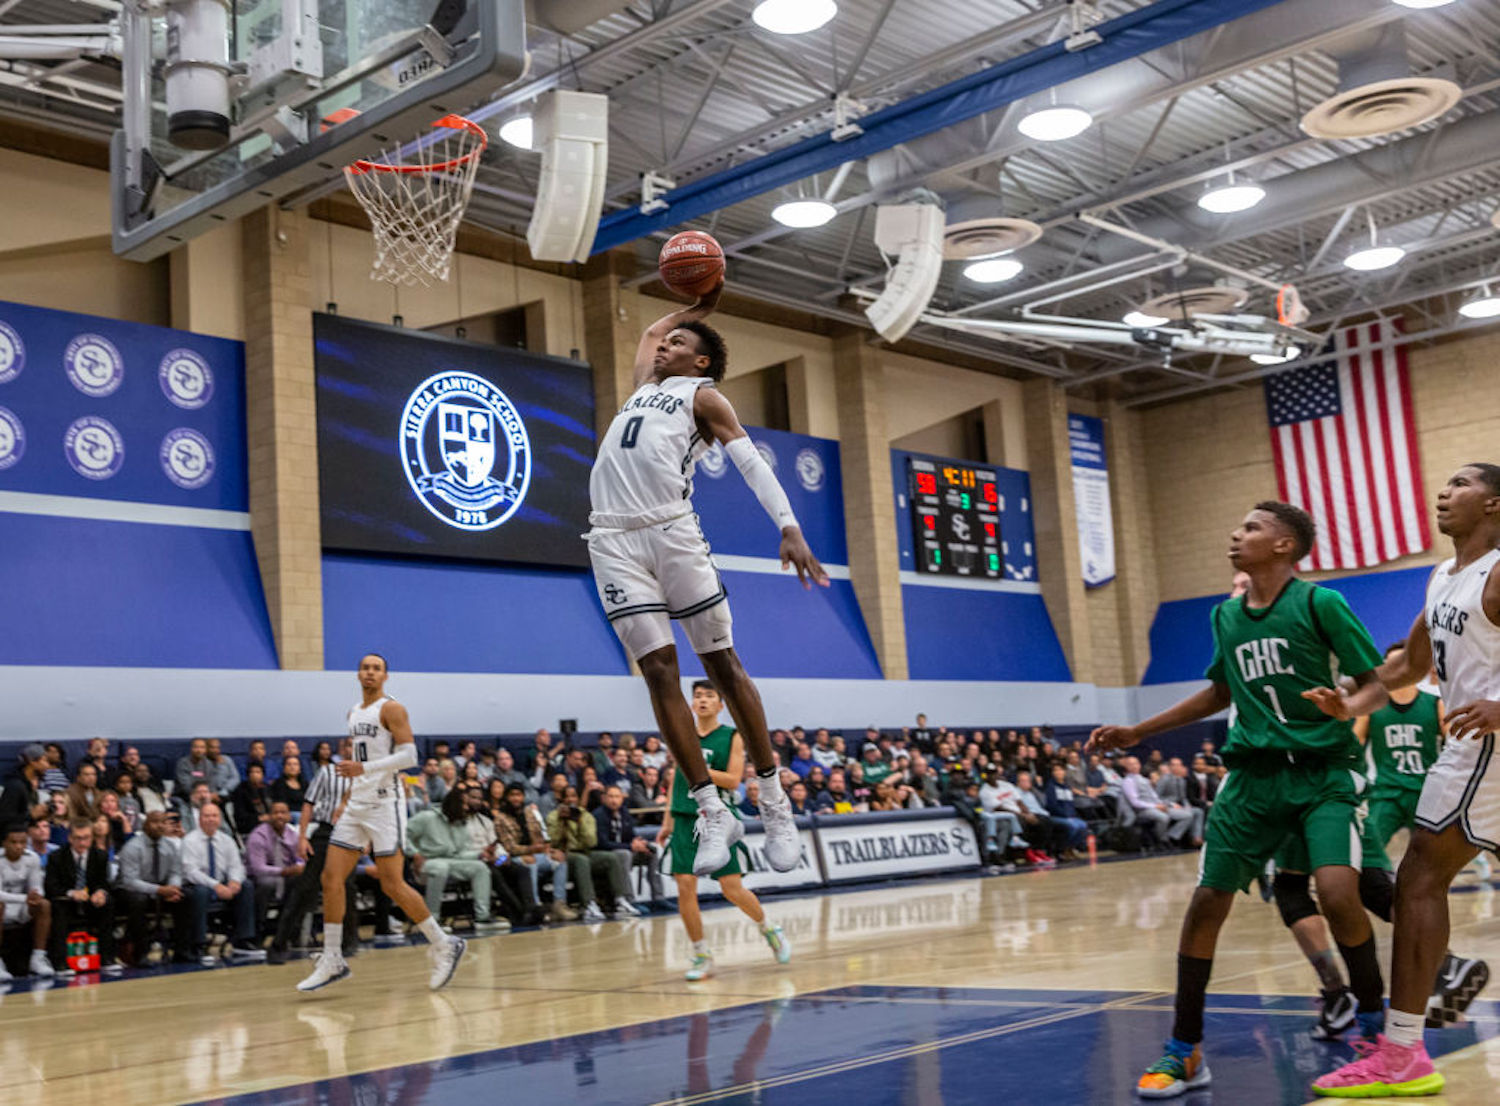 LeBron James' son, Bronny, is a highly touted high school basketball recruit, but when will he be able to enter the NBA draft?